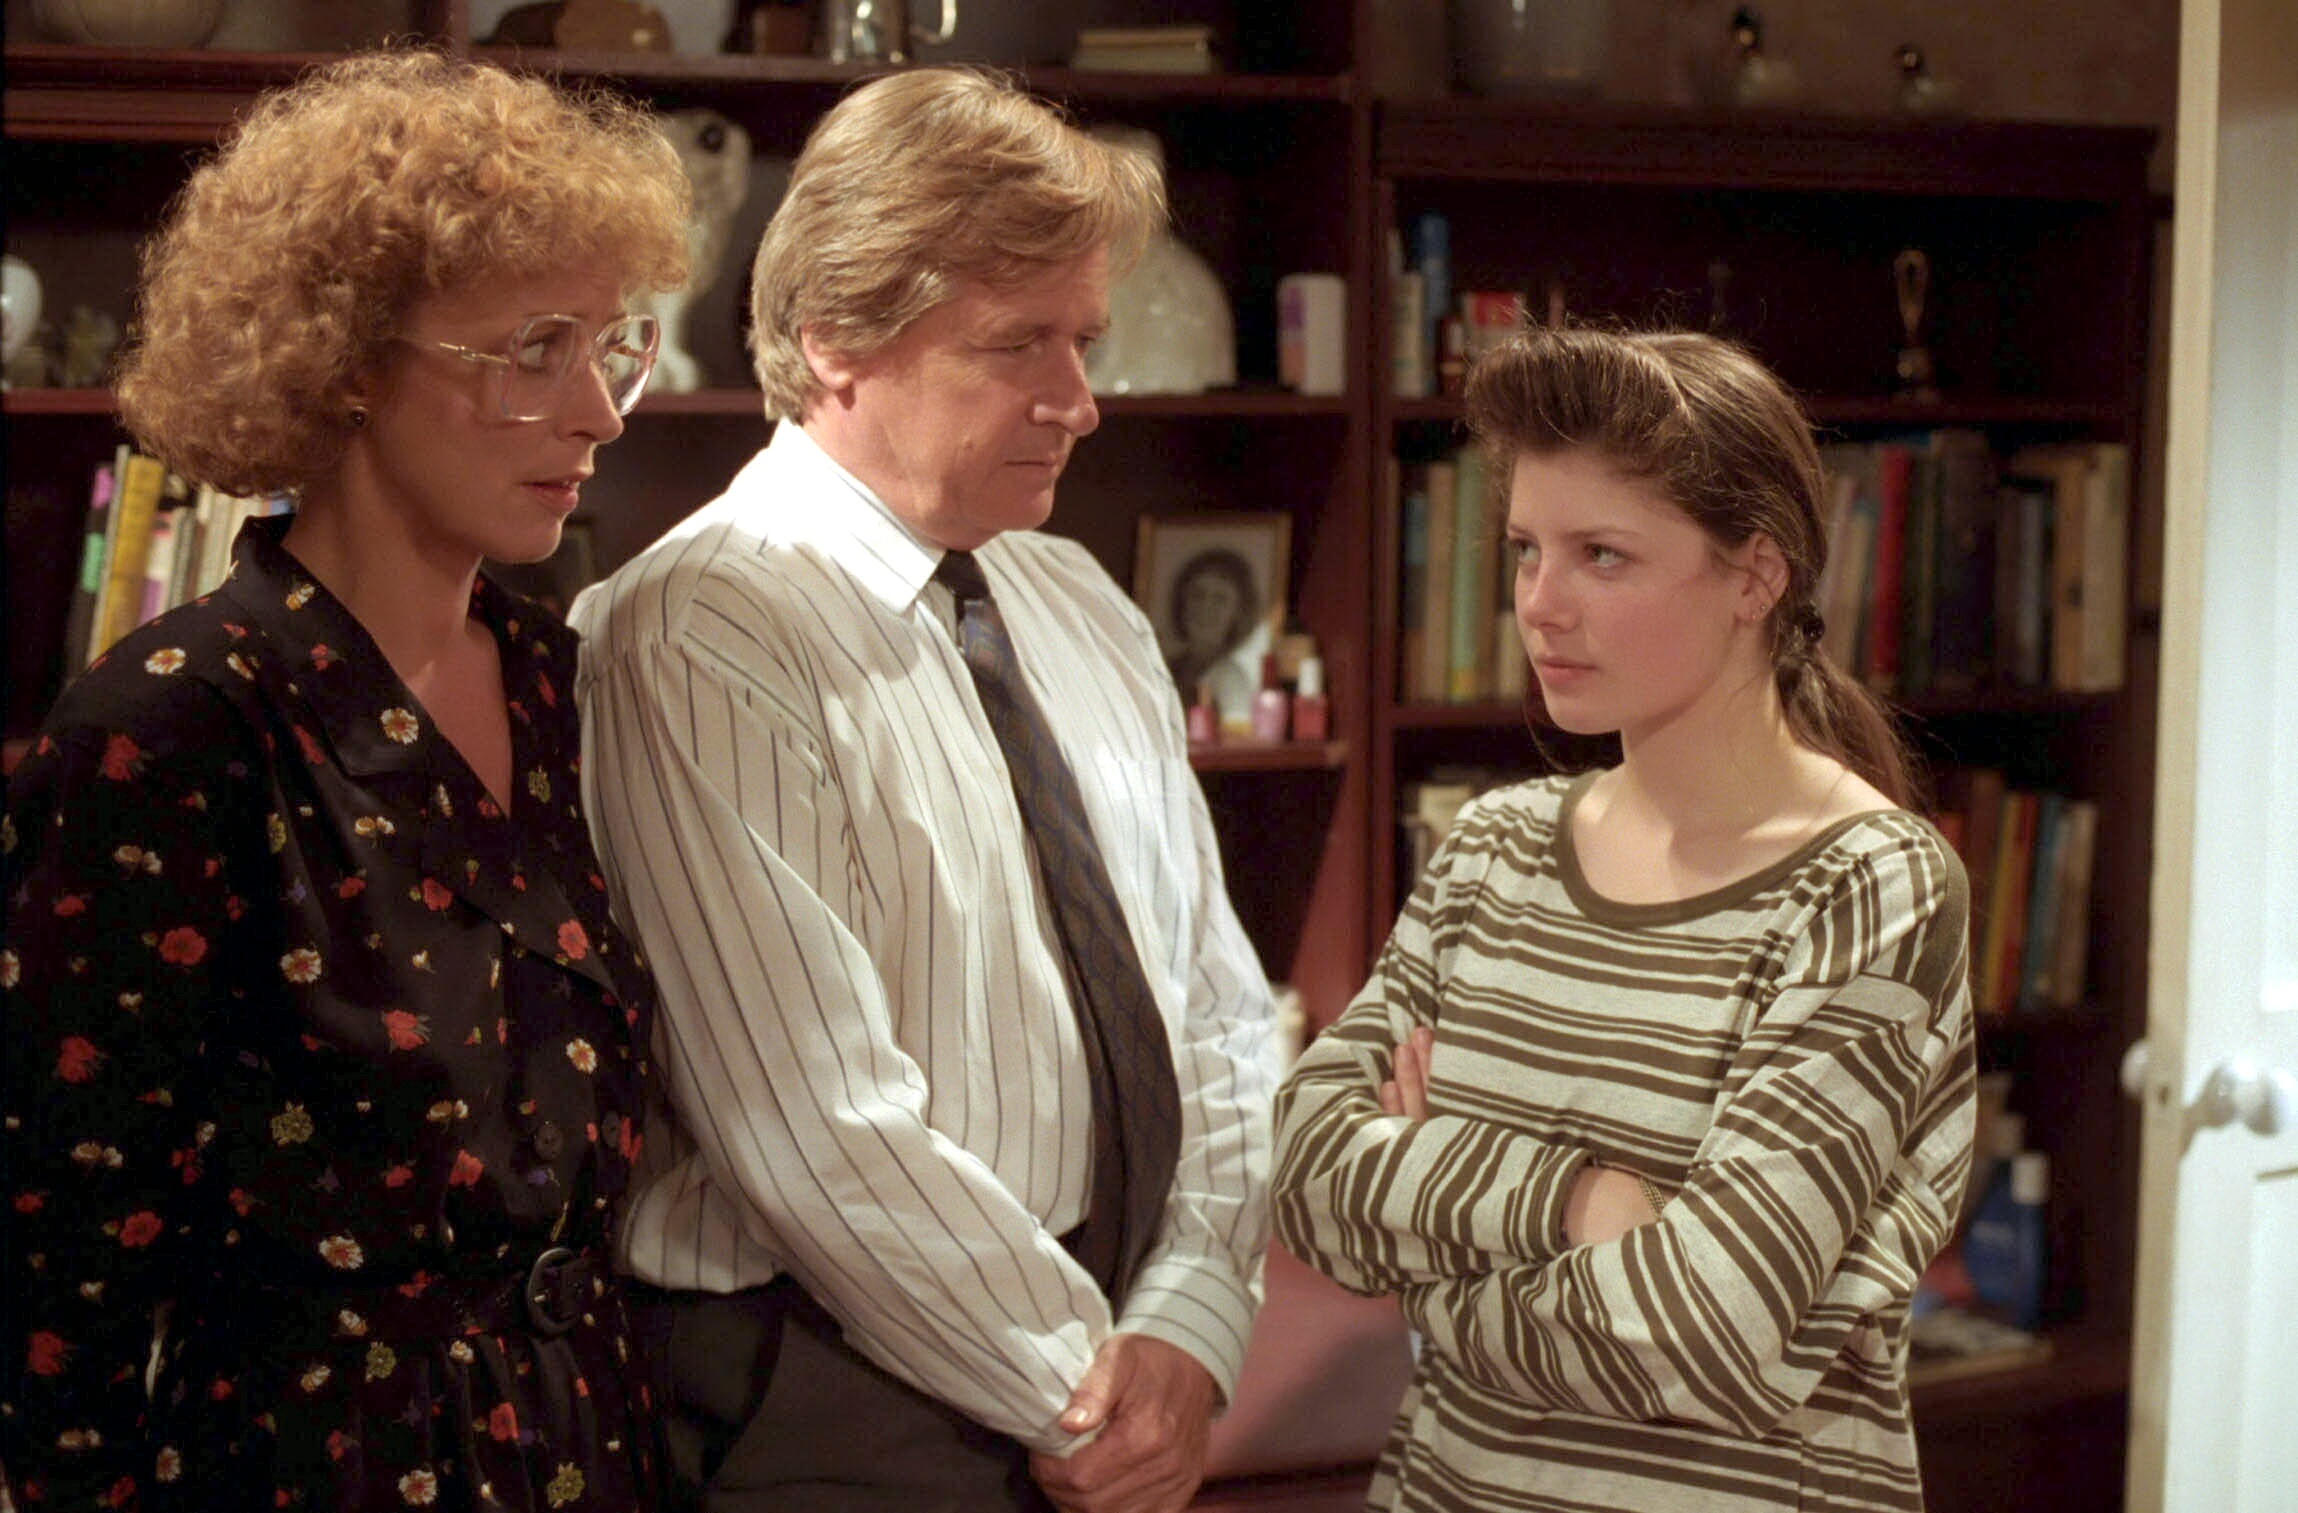 Editorial use only. Exclusive - Premium Rates Apply. Call your Account Manager for pricing. Mandatory Credit: Photo by ITV/Shutterstock (669486qt) 'Coronation Street' TV - 1993 - Deirdre Barlow [Anne Kirkbride], Ken Barlow [William Roache] and Tracy Barlow [Dawn Acton] ITV ARCHIVE